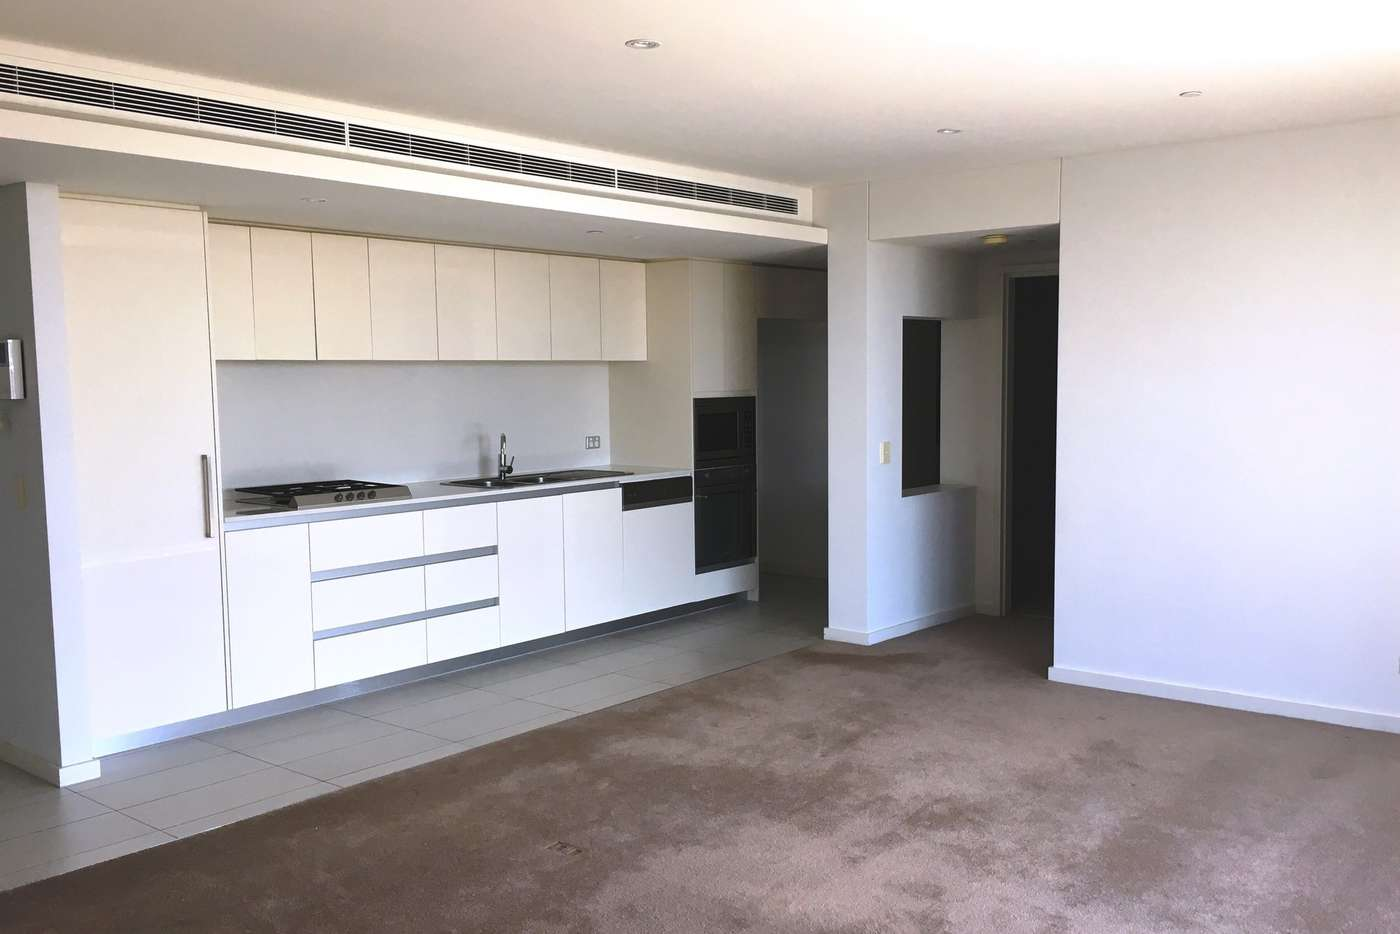 Main view of Homely apartment listing, 607/96 Bow River Crescent, Burswood WA 6100